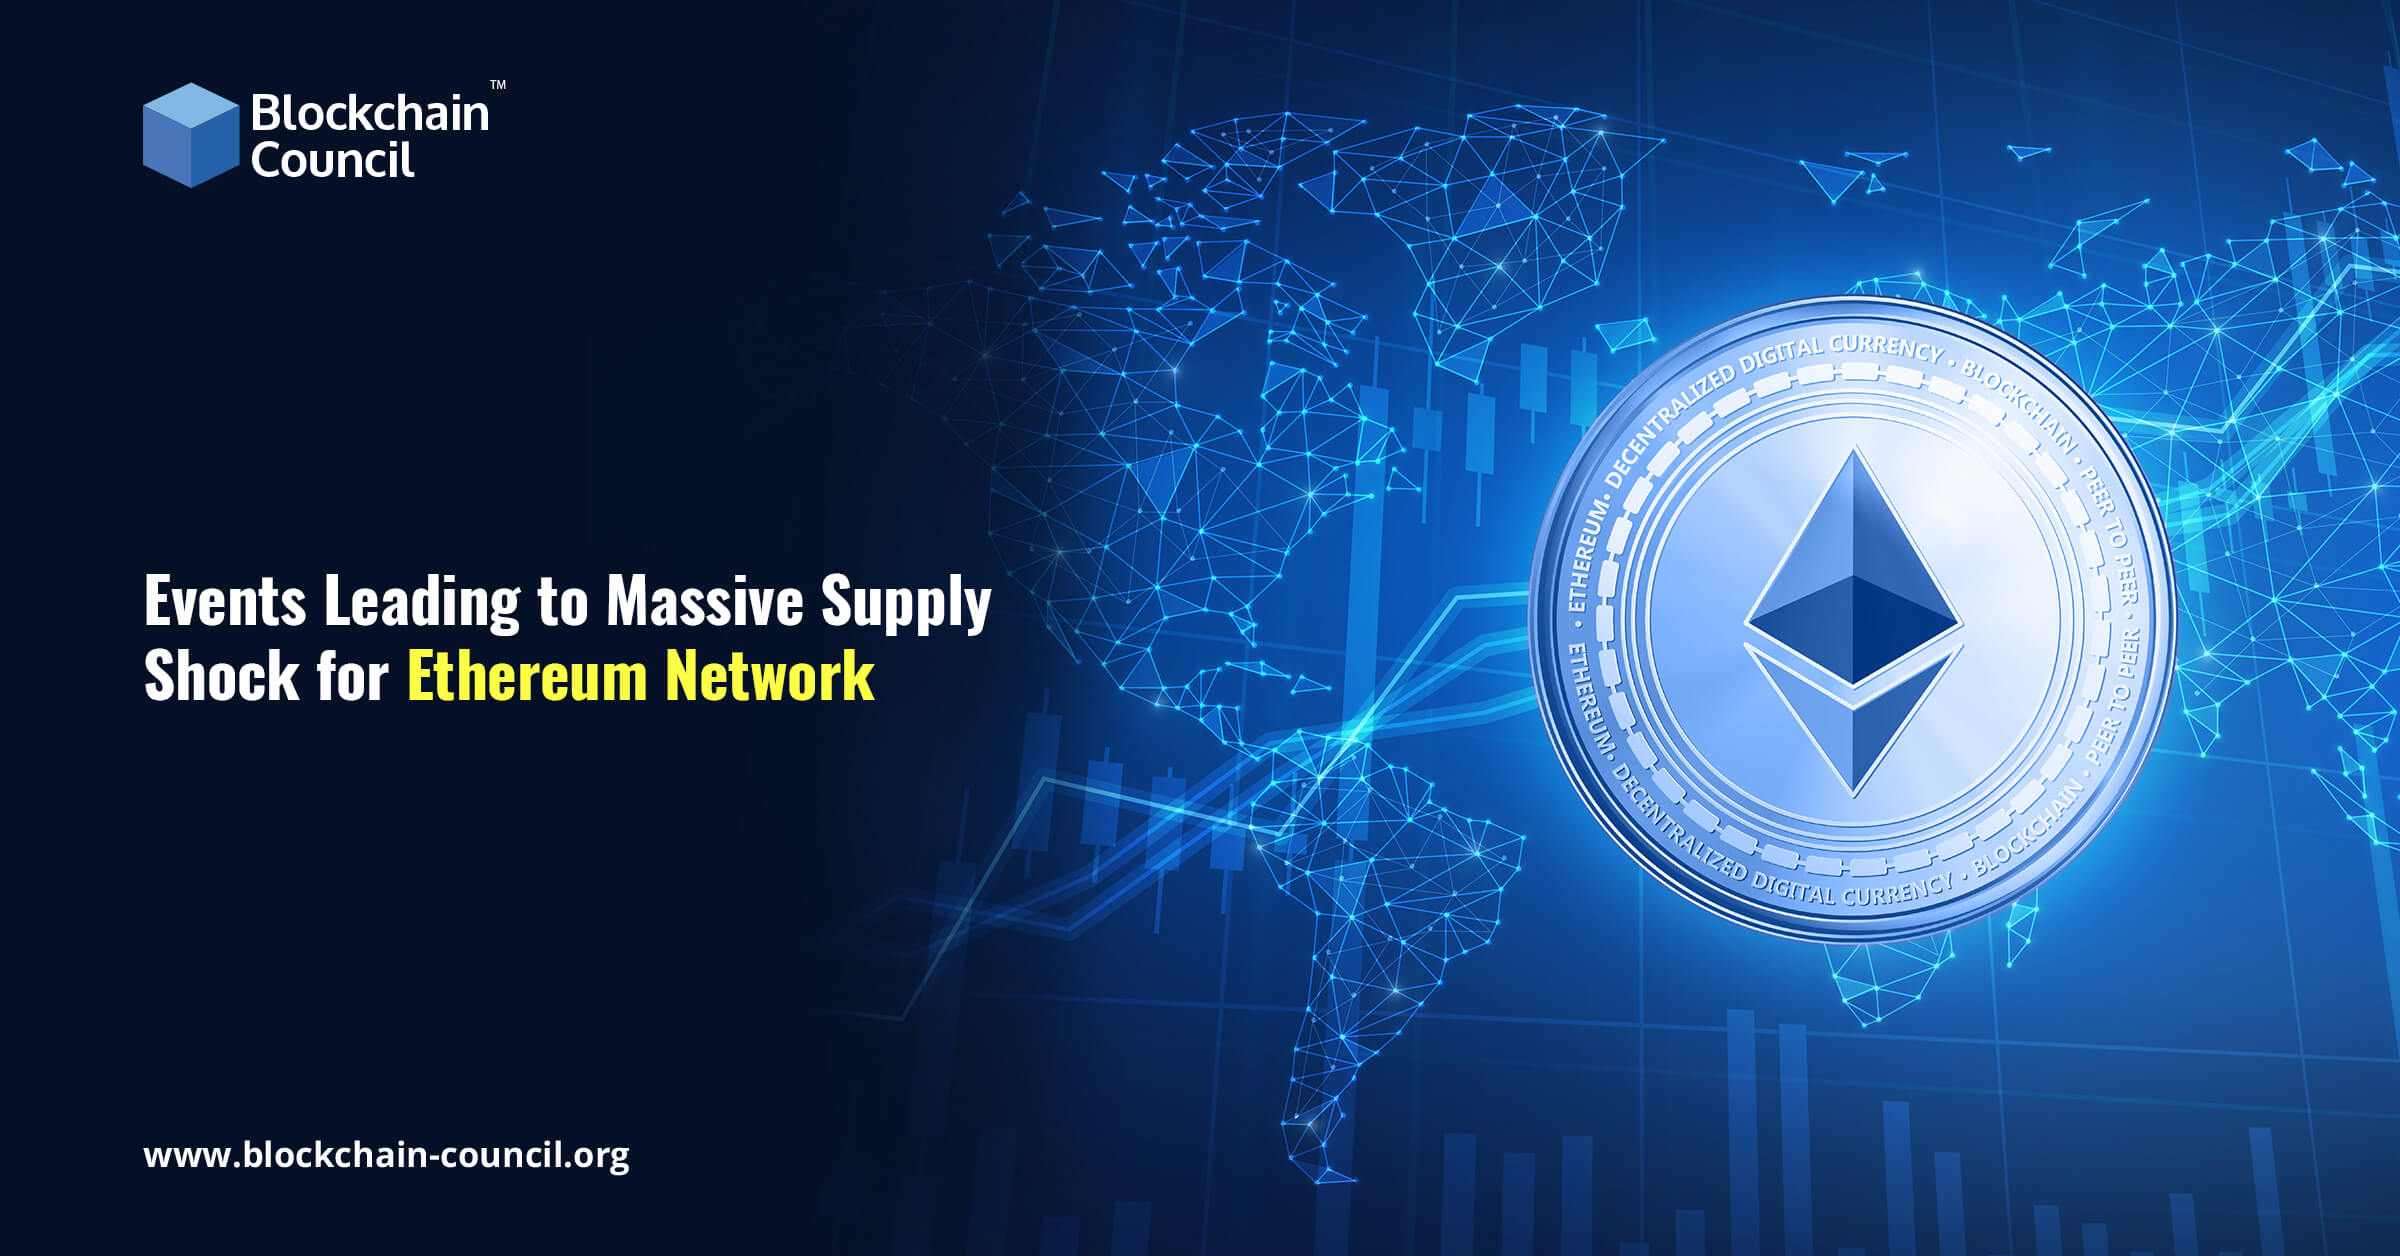 Events Leading to Massive Supply Shock for Ethereum Network